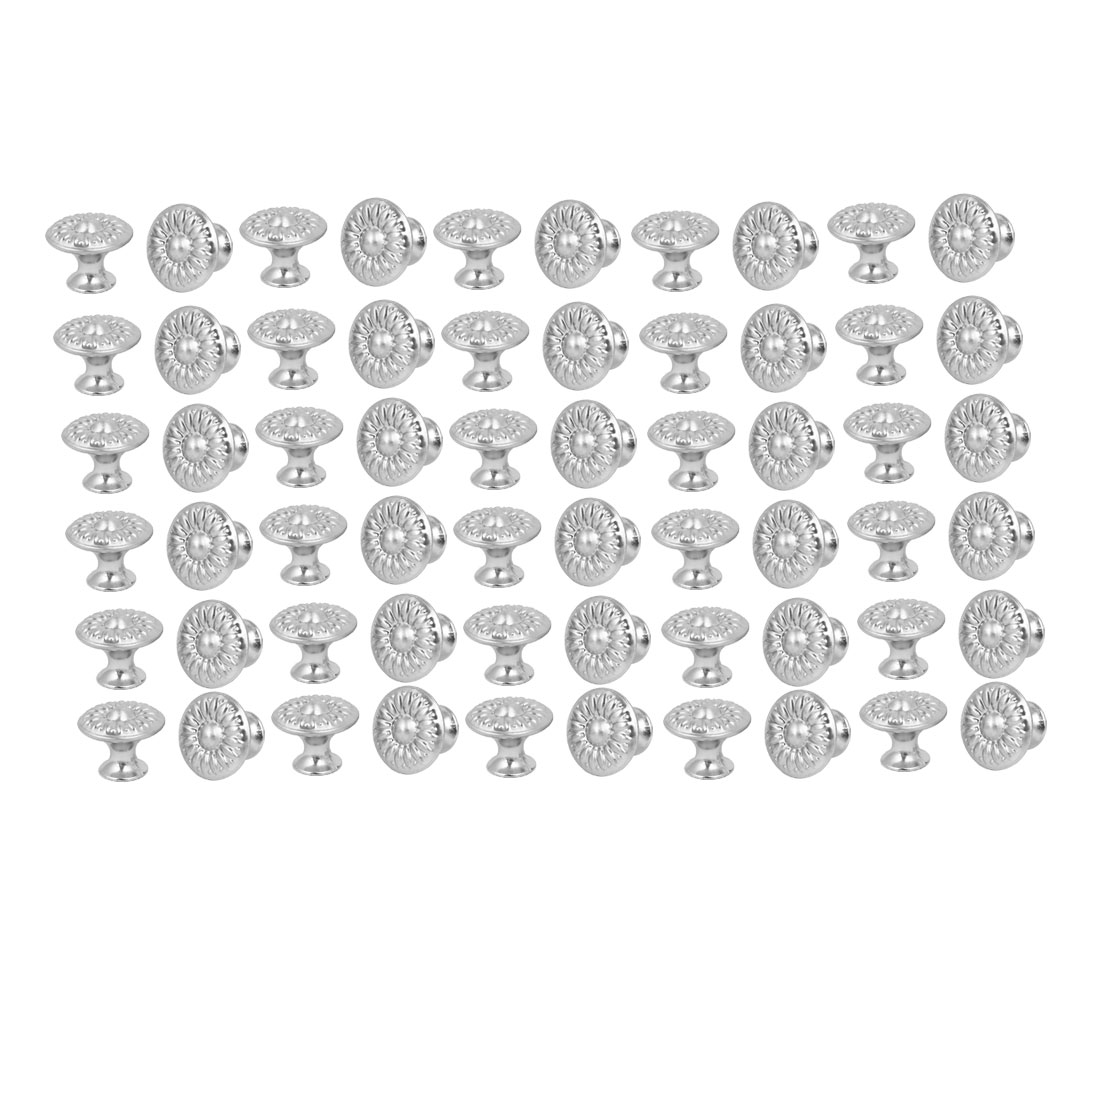 Cabinet Drawer Single Hole Flower Pattern Pull Knobs Silver Tone 27mmx22mm 60pcs